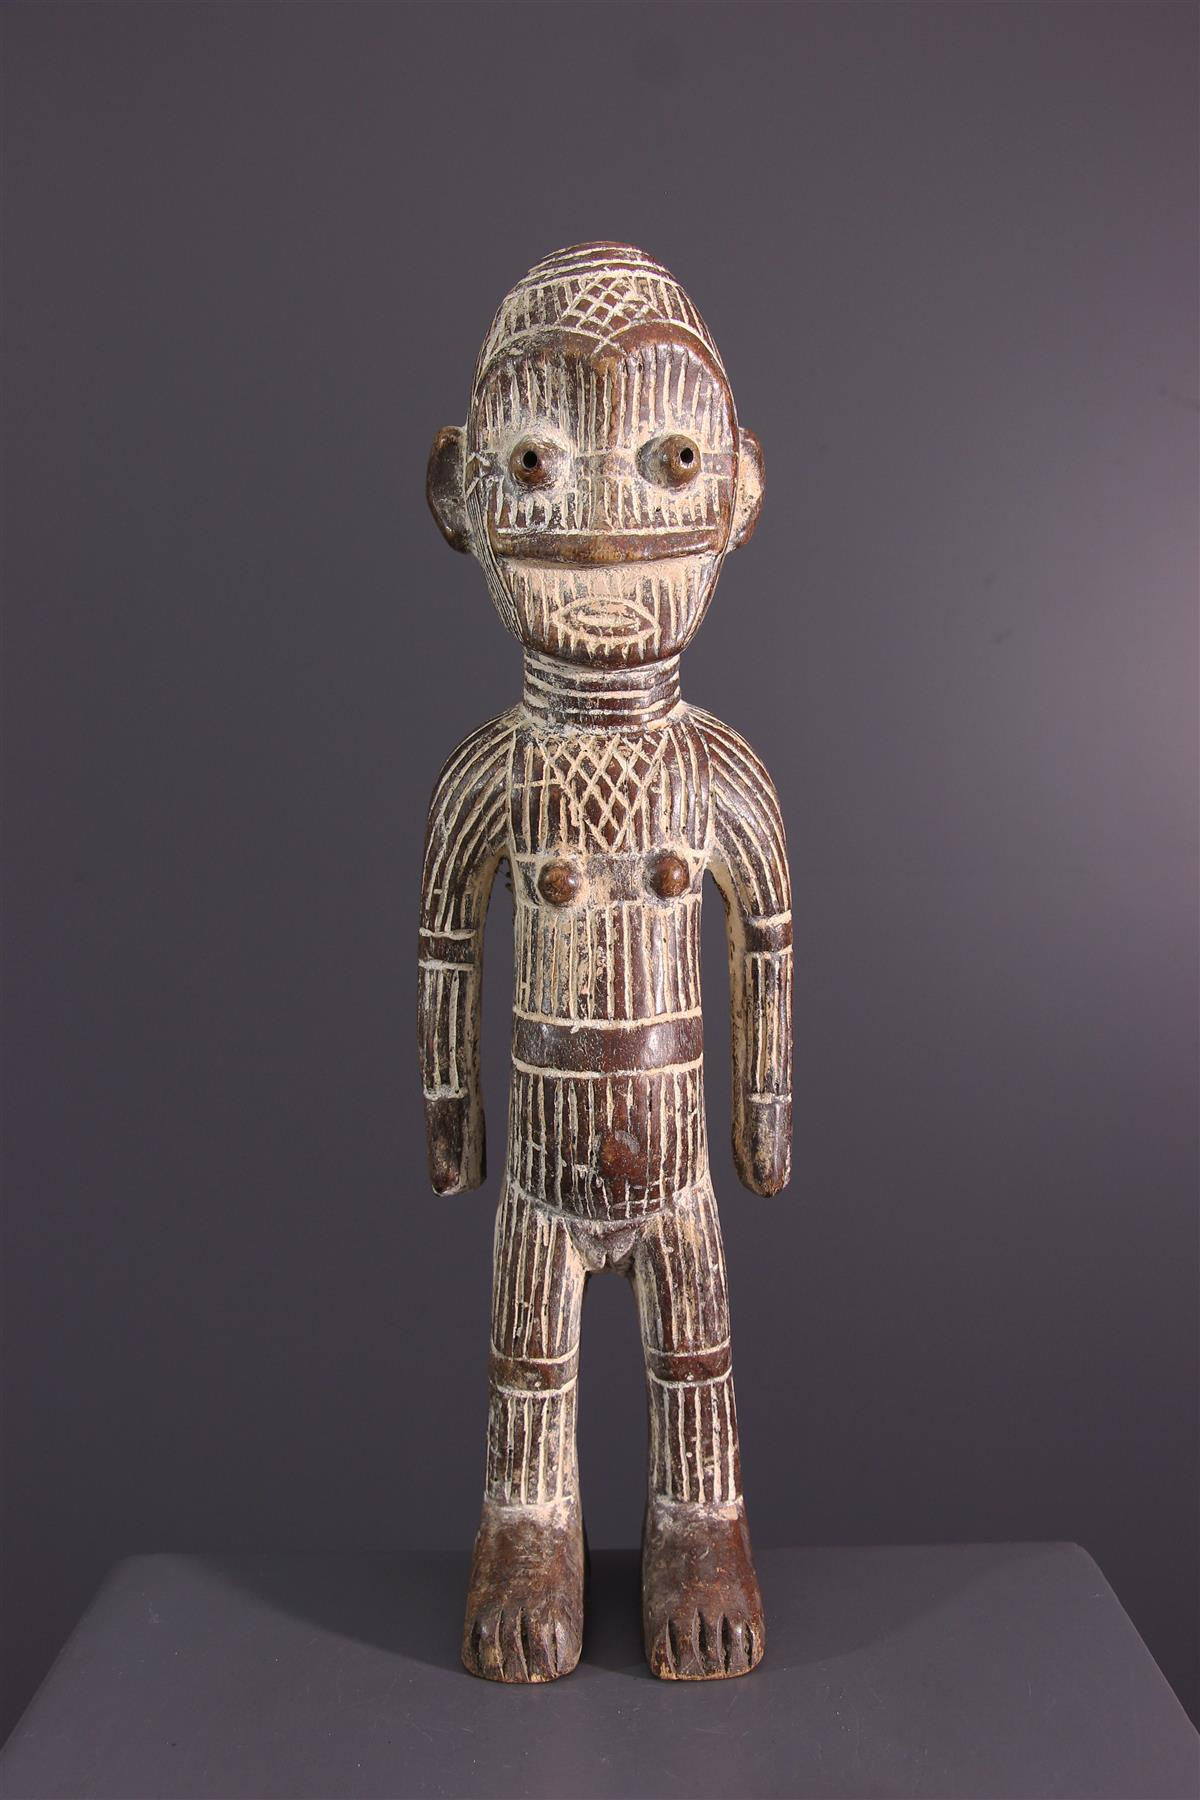 Metoko figure - Tribal art